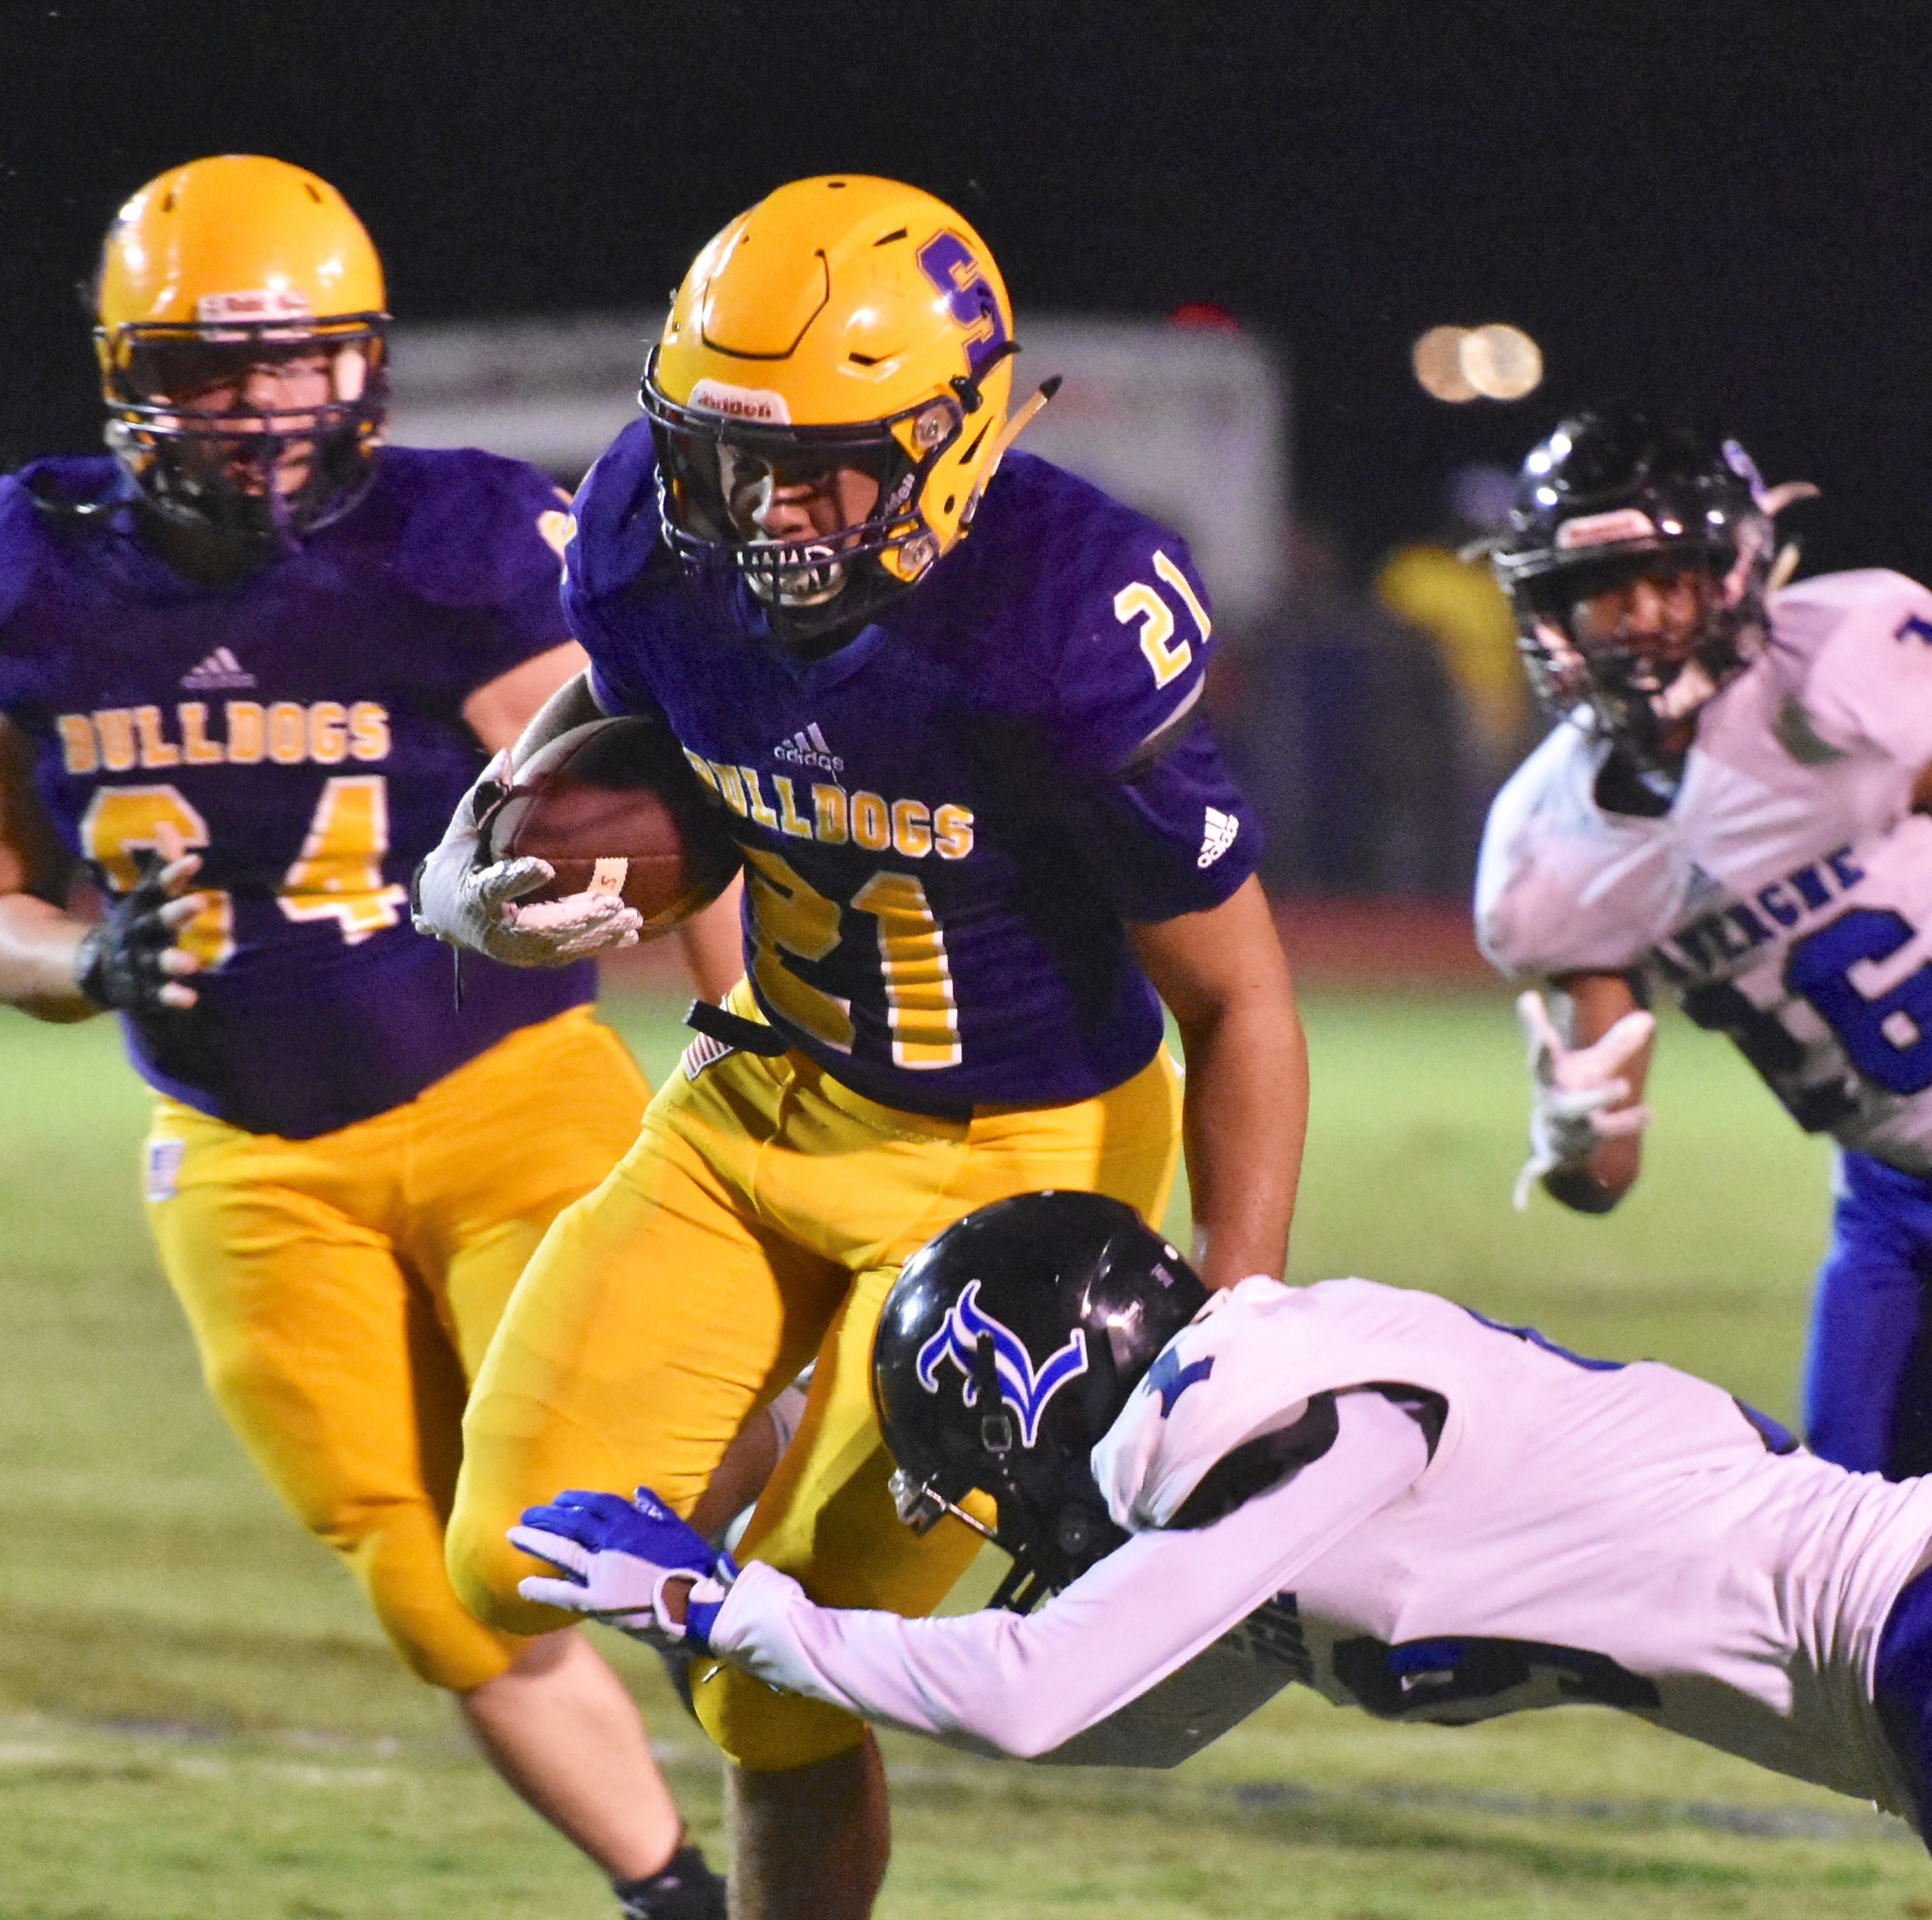 Smyrna defense lives up to hype during shutout over rival La Vergne